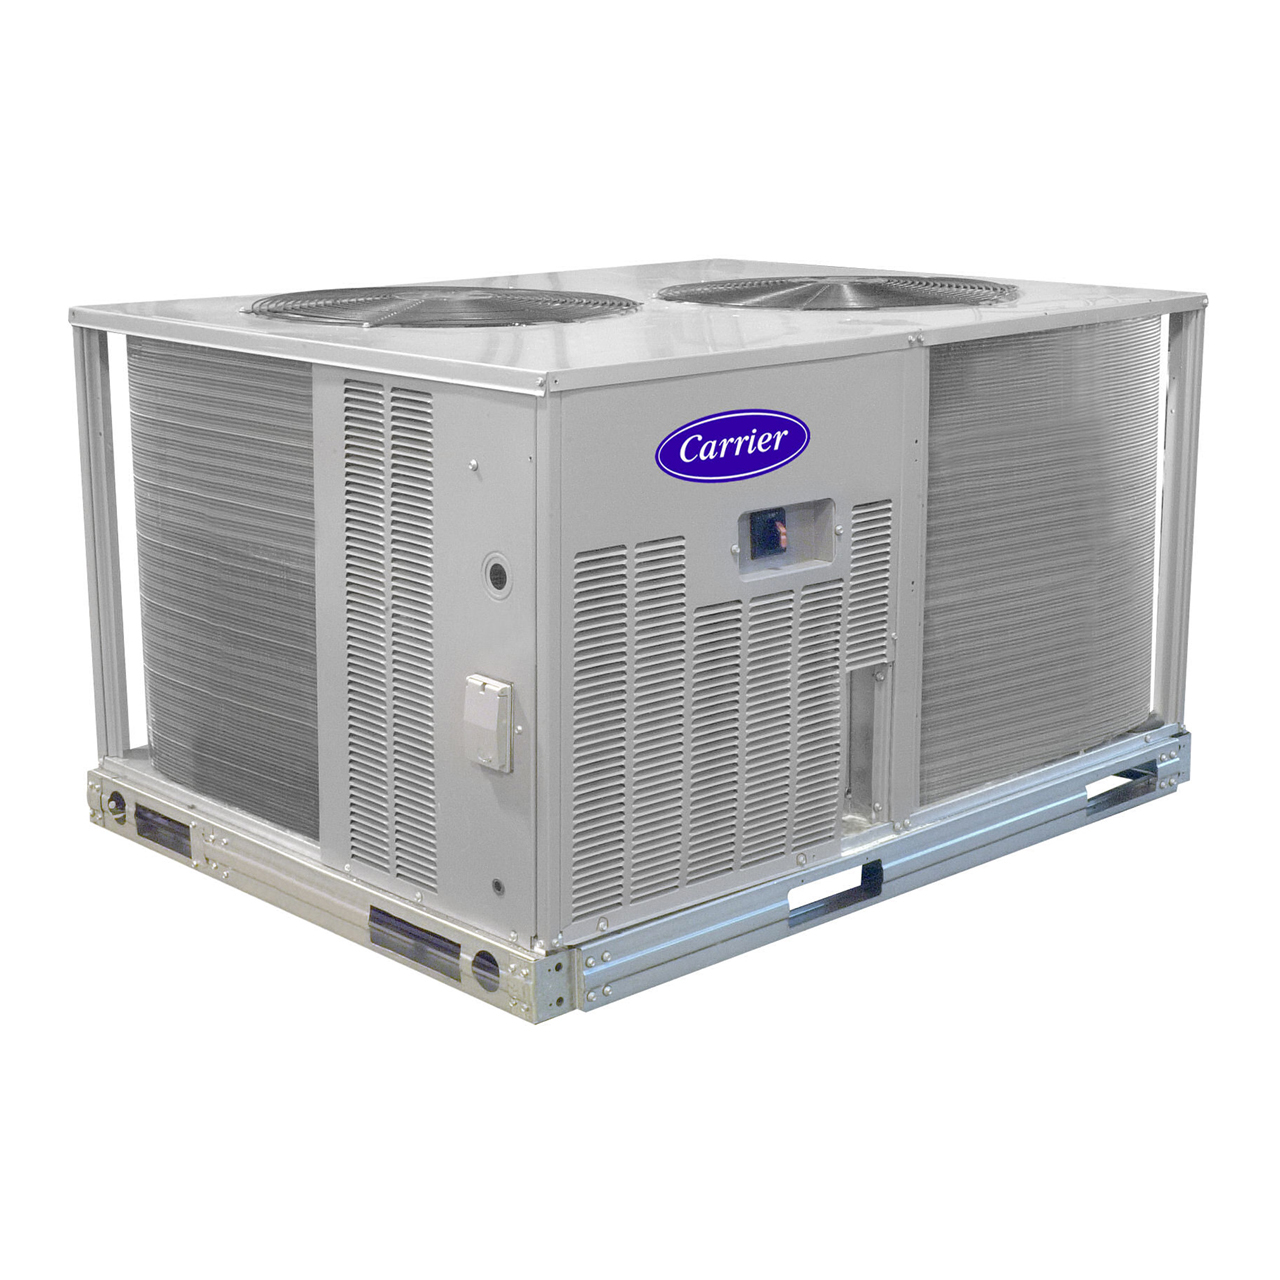 carrier-38auq-three-phase-heat-pump-commercial-split-system